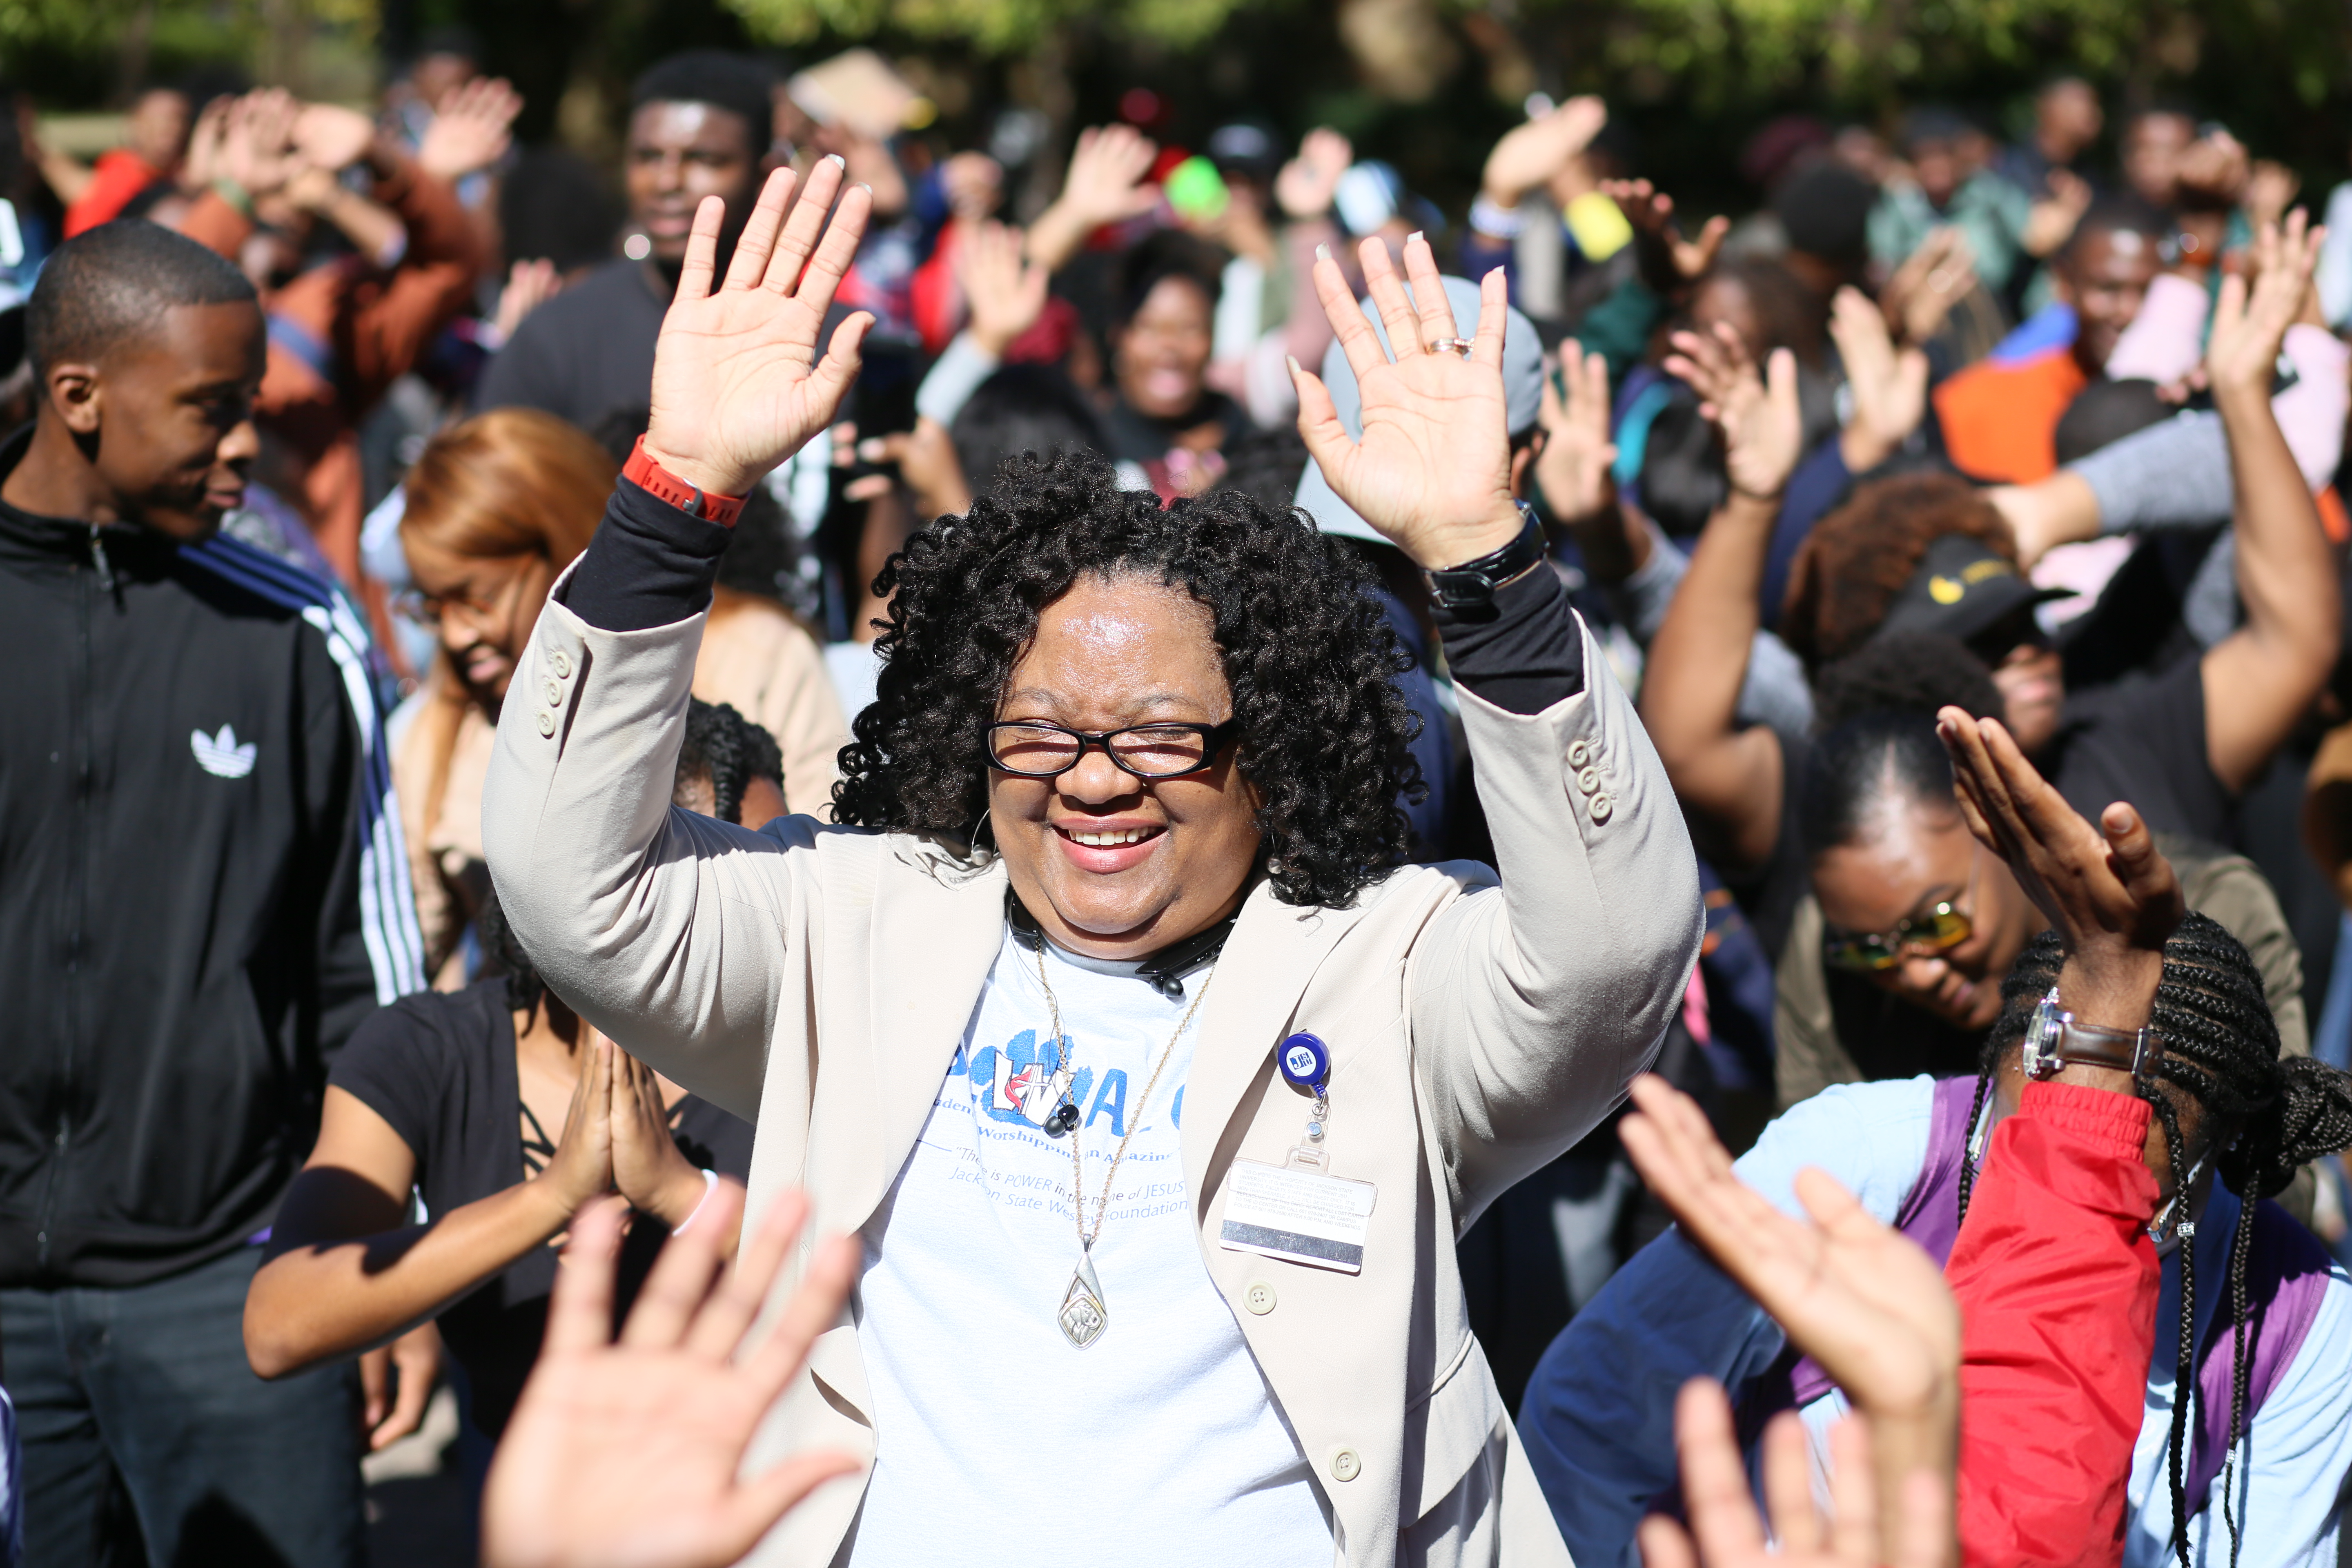 The Rev. Maxine Bolden shares in a hallelujah moment with JSU students during a Hotspot event Monday on the Gibbs-Green Plaza. (Photo by Anissa Hidouk/JSU)